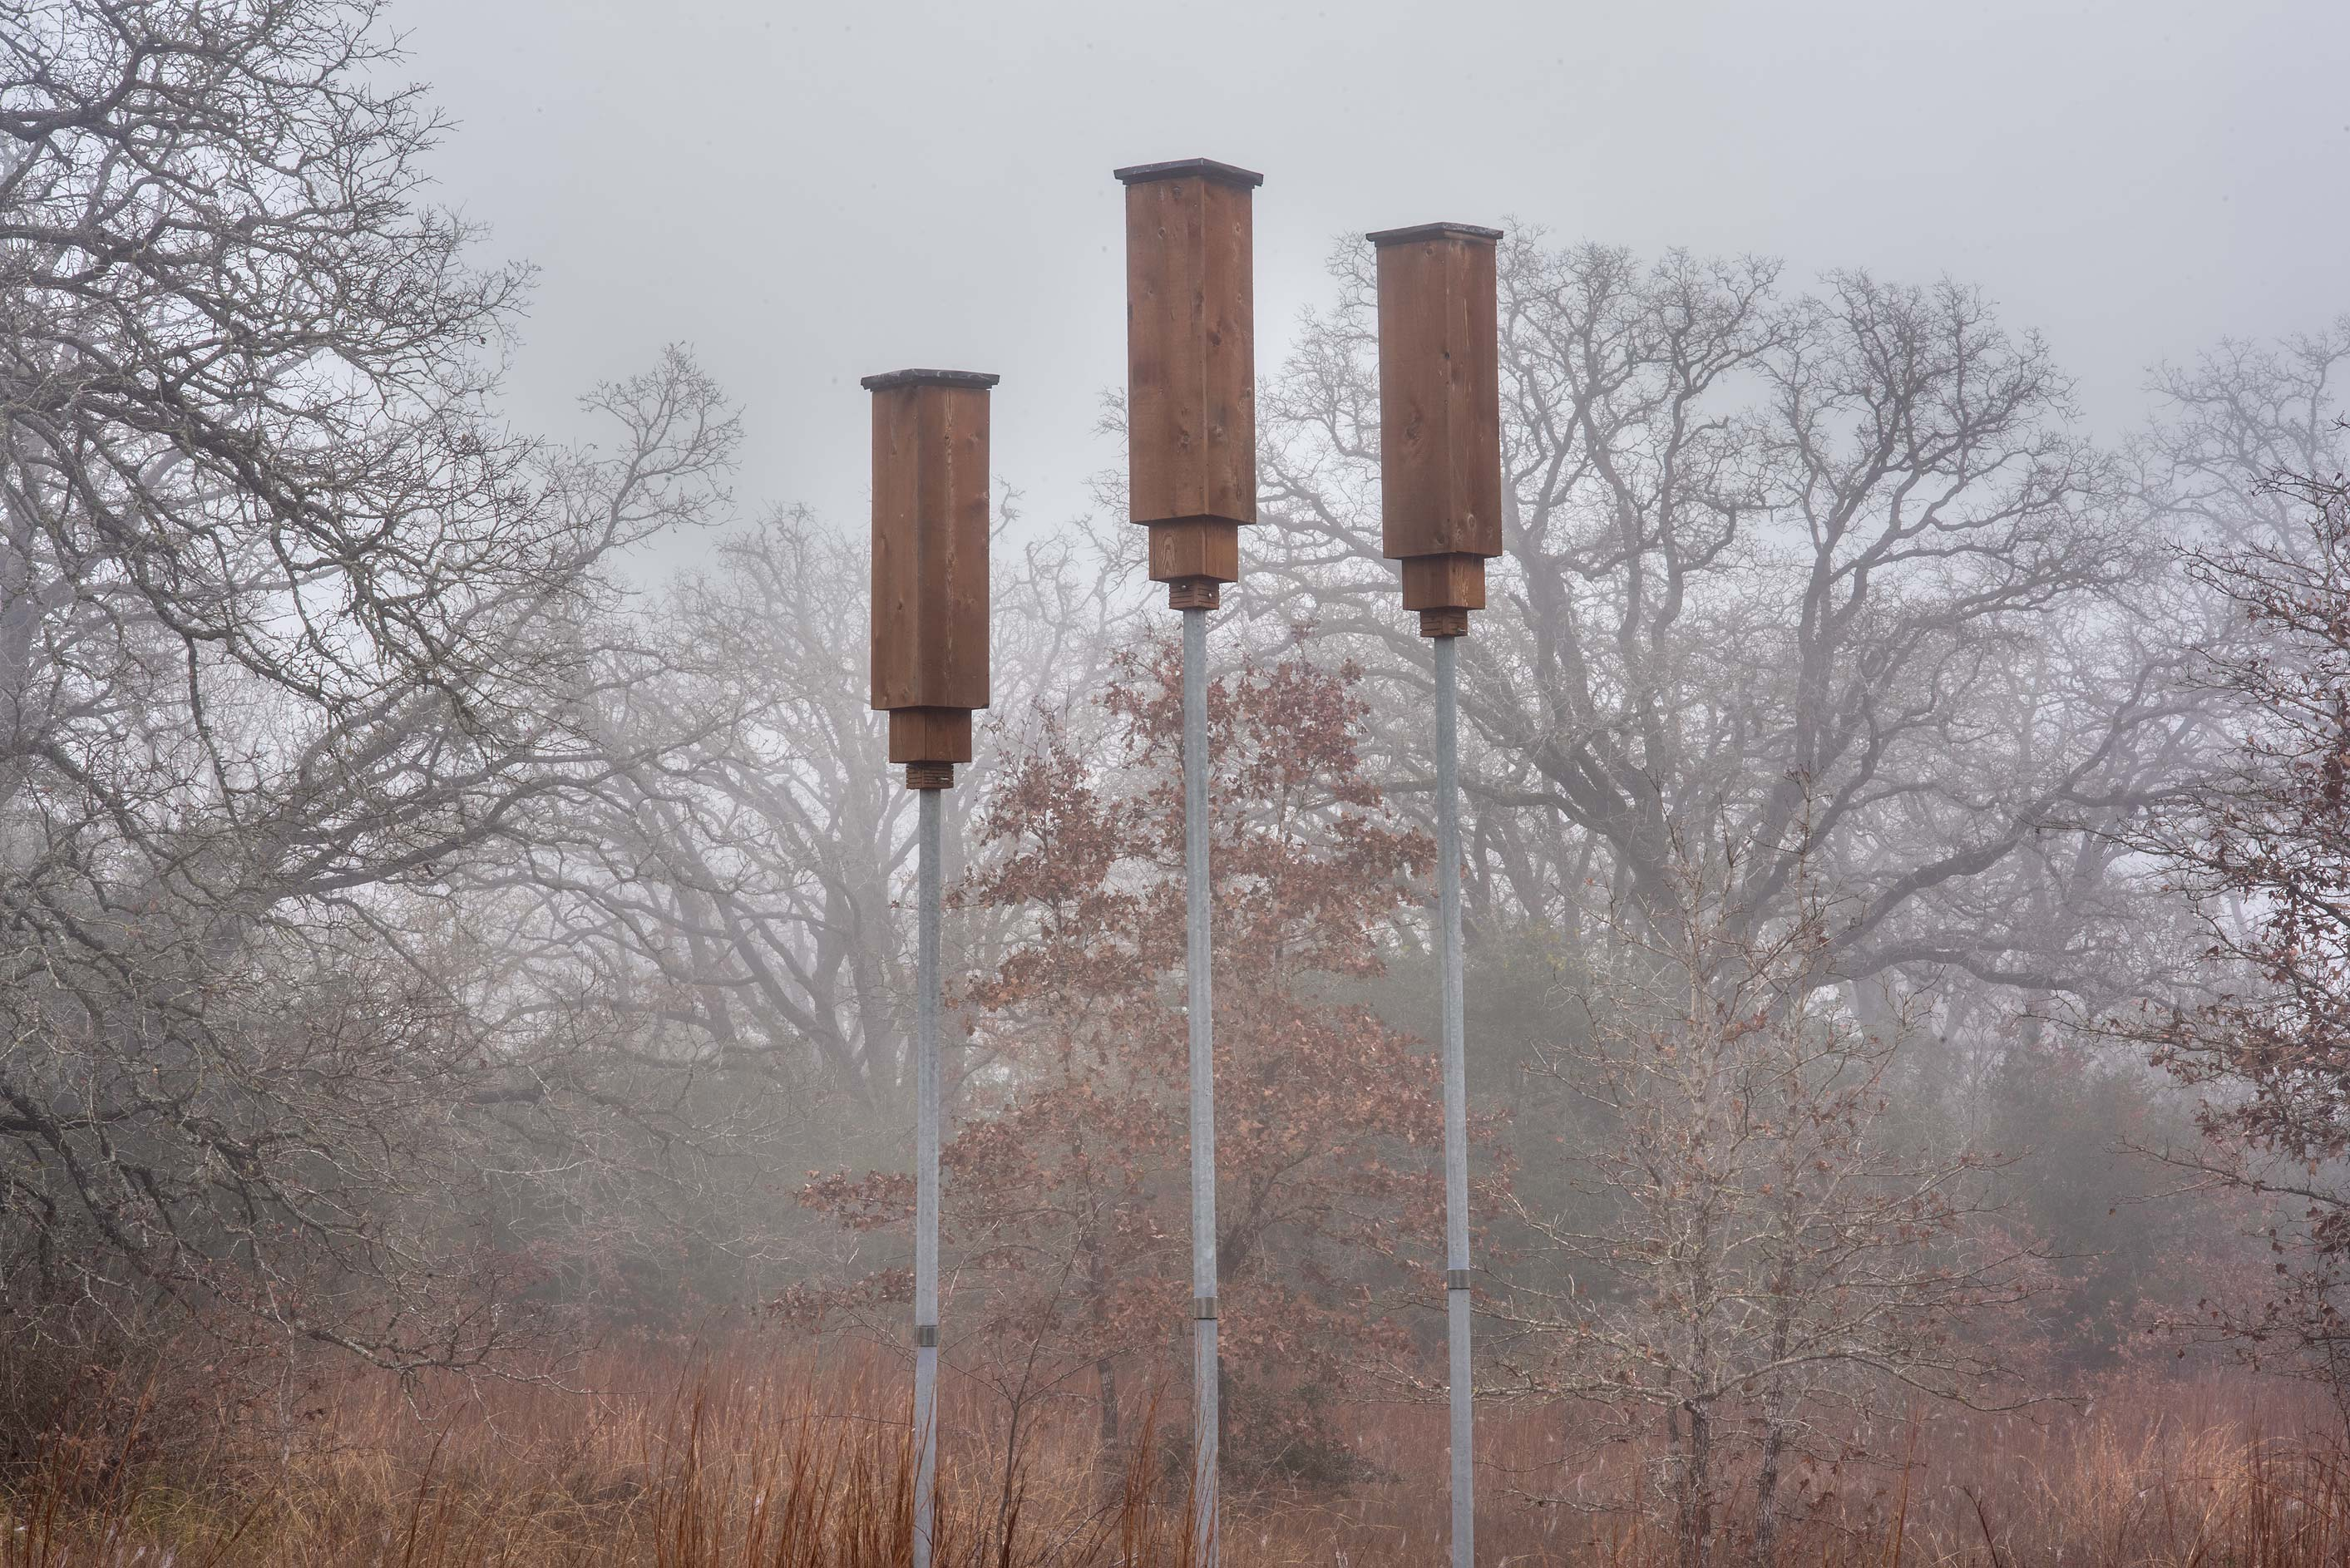 Rocket box bat houses in Lick Creek Park. College Station, Texas